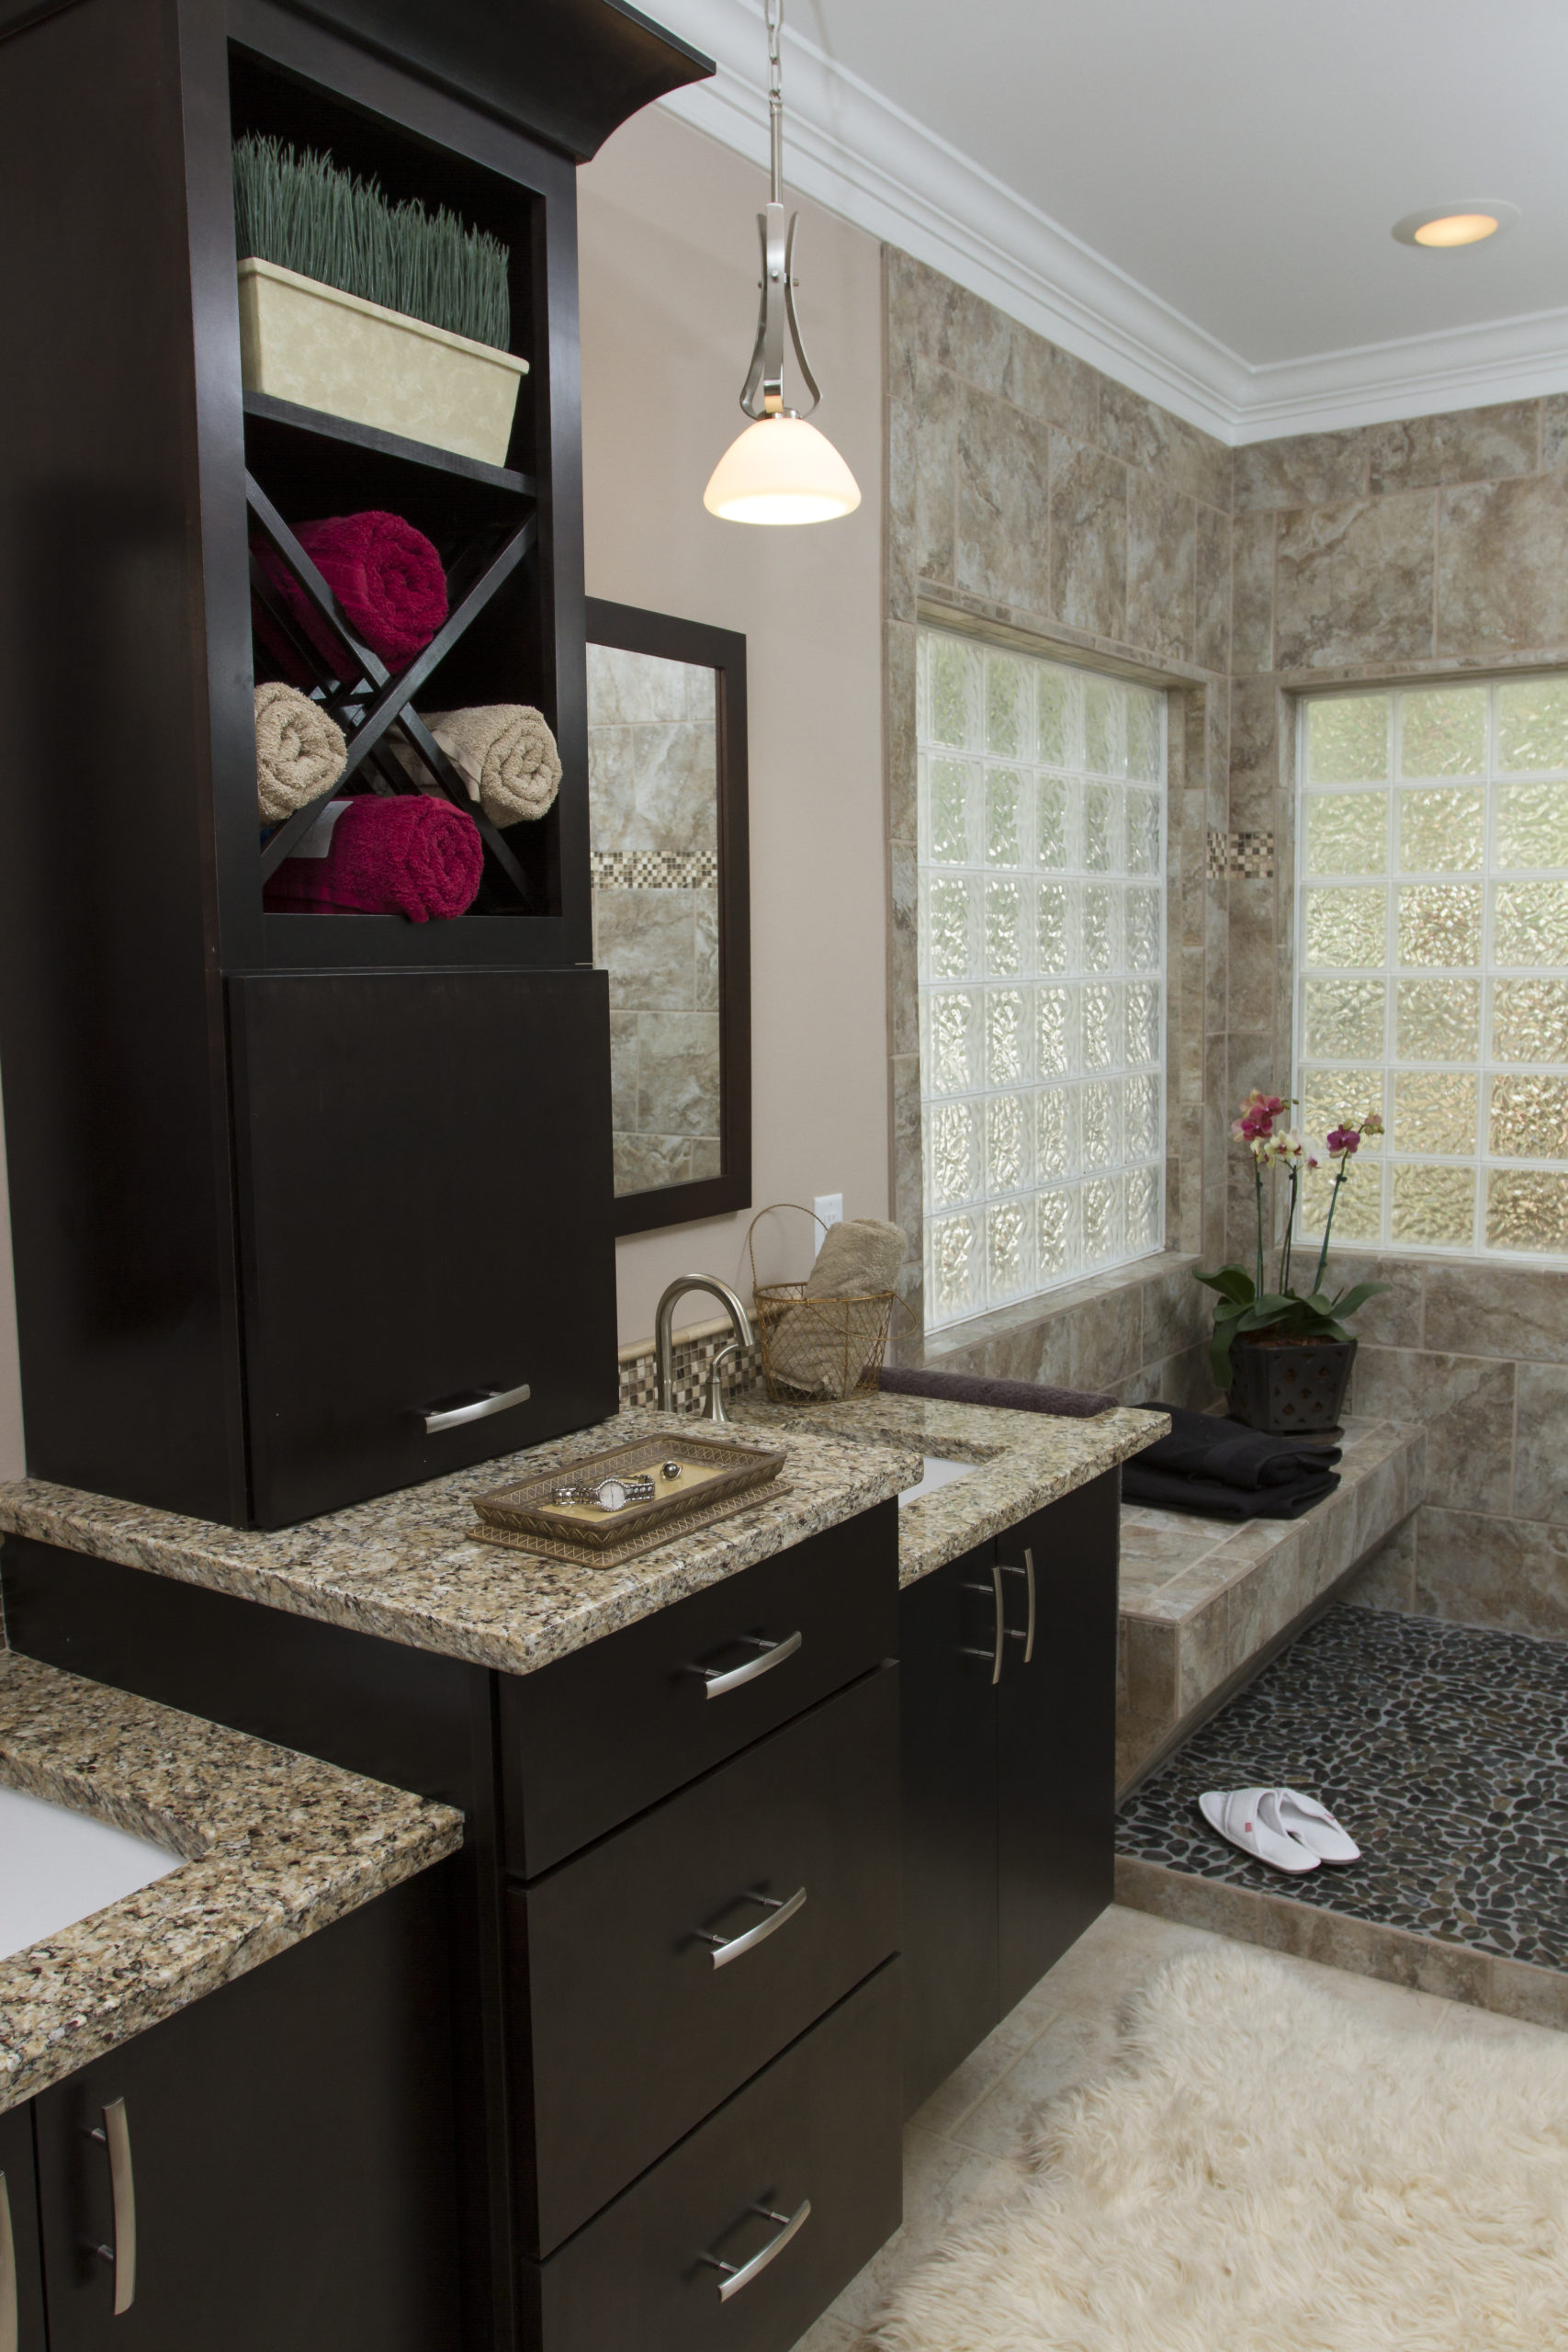 Bathroom Remodeling Cary Nc Design bathroom and kitchen design remodeling | cary raleigh chapel hill